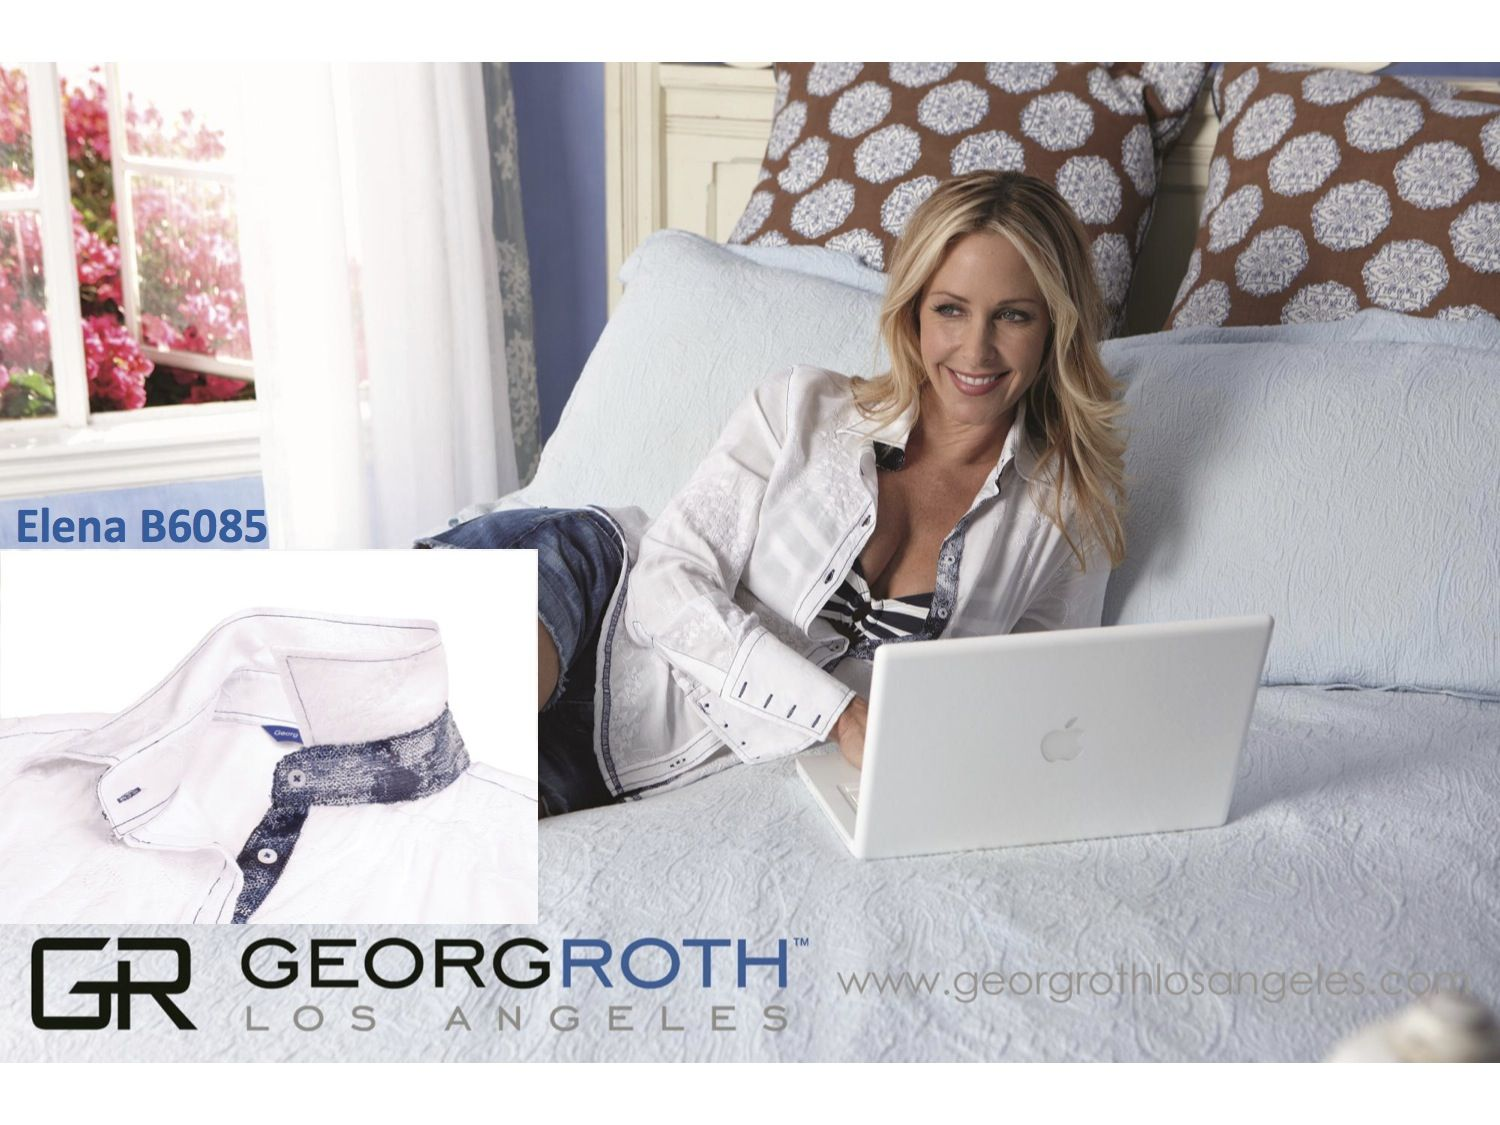 Comfort at home. On behalf of Roth and the team